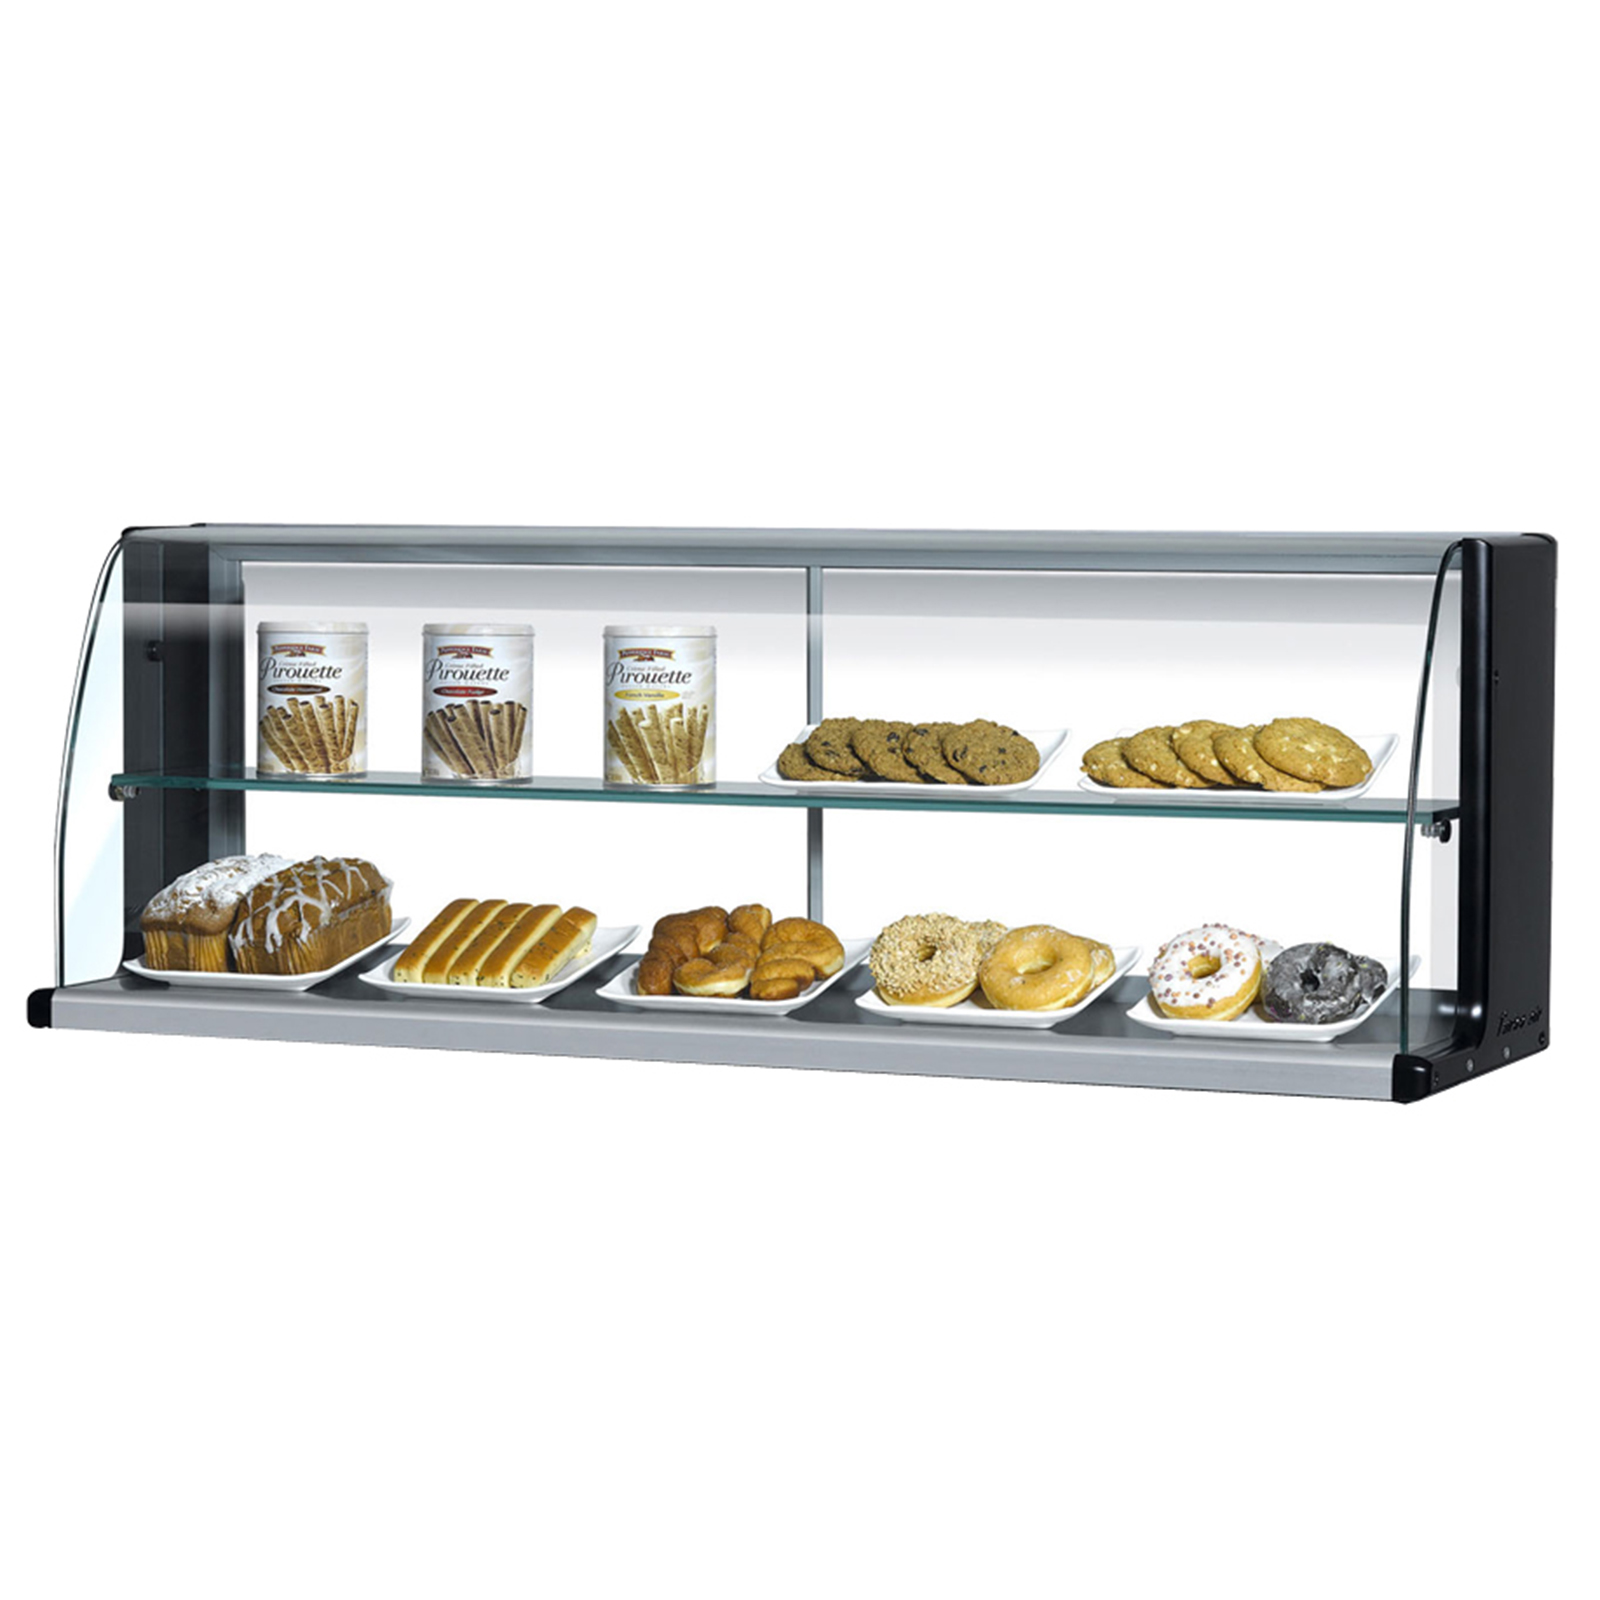 Turbo Air TOMD-60HW(B) display case, non-refrigerated countertop